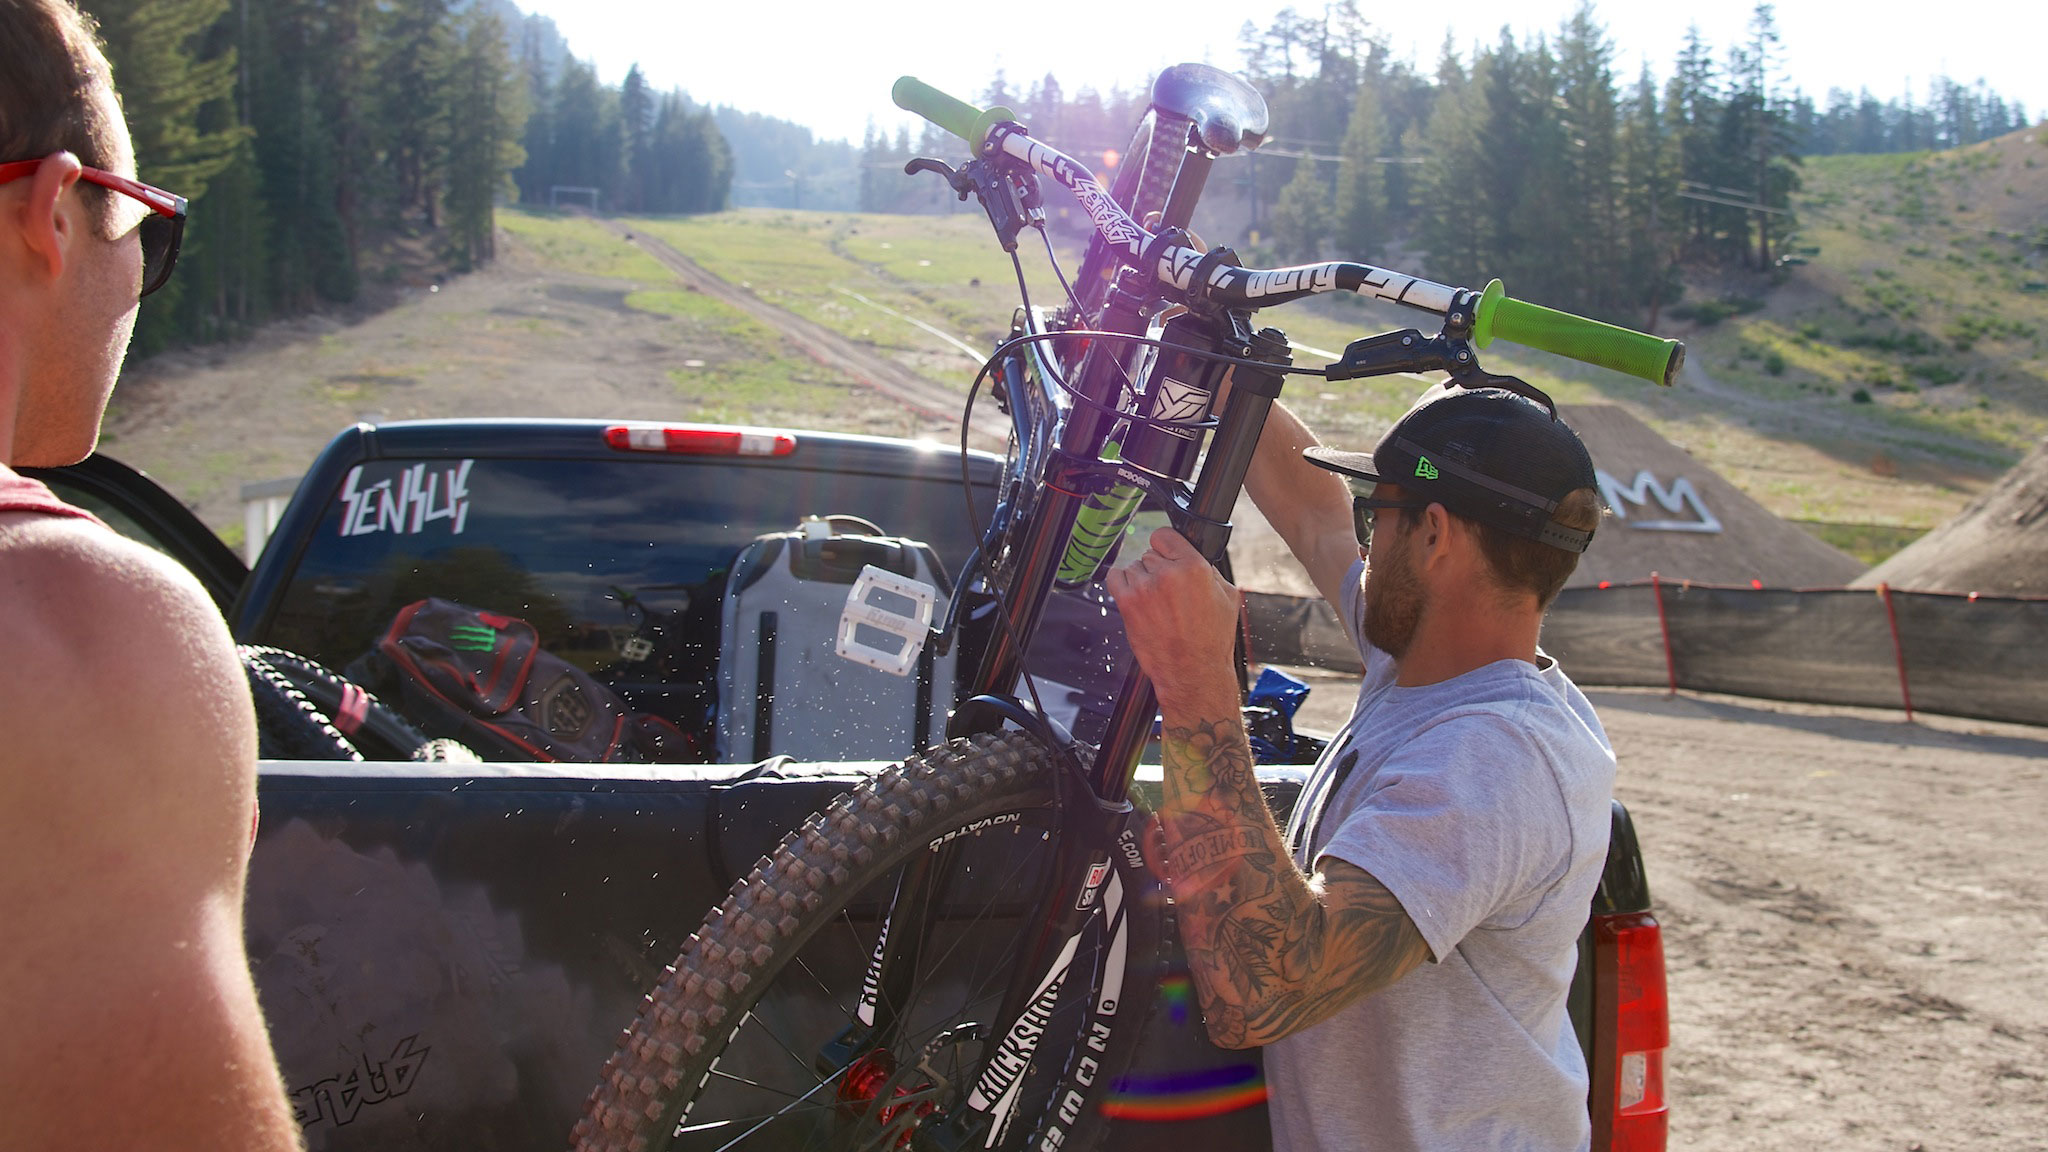 Zink loads up his bike Tuesday for another practice run at Mammoth while his brother Howie looks on.